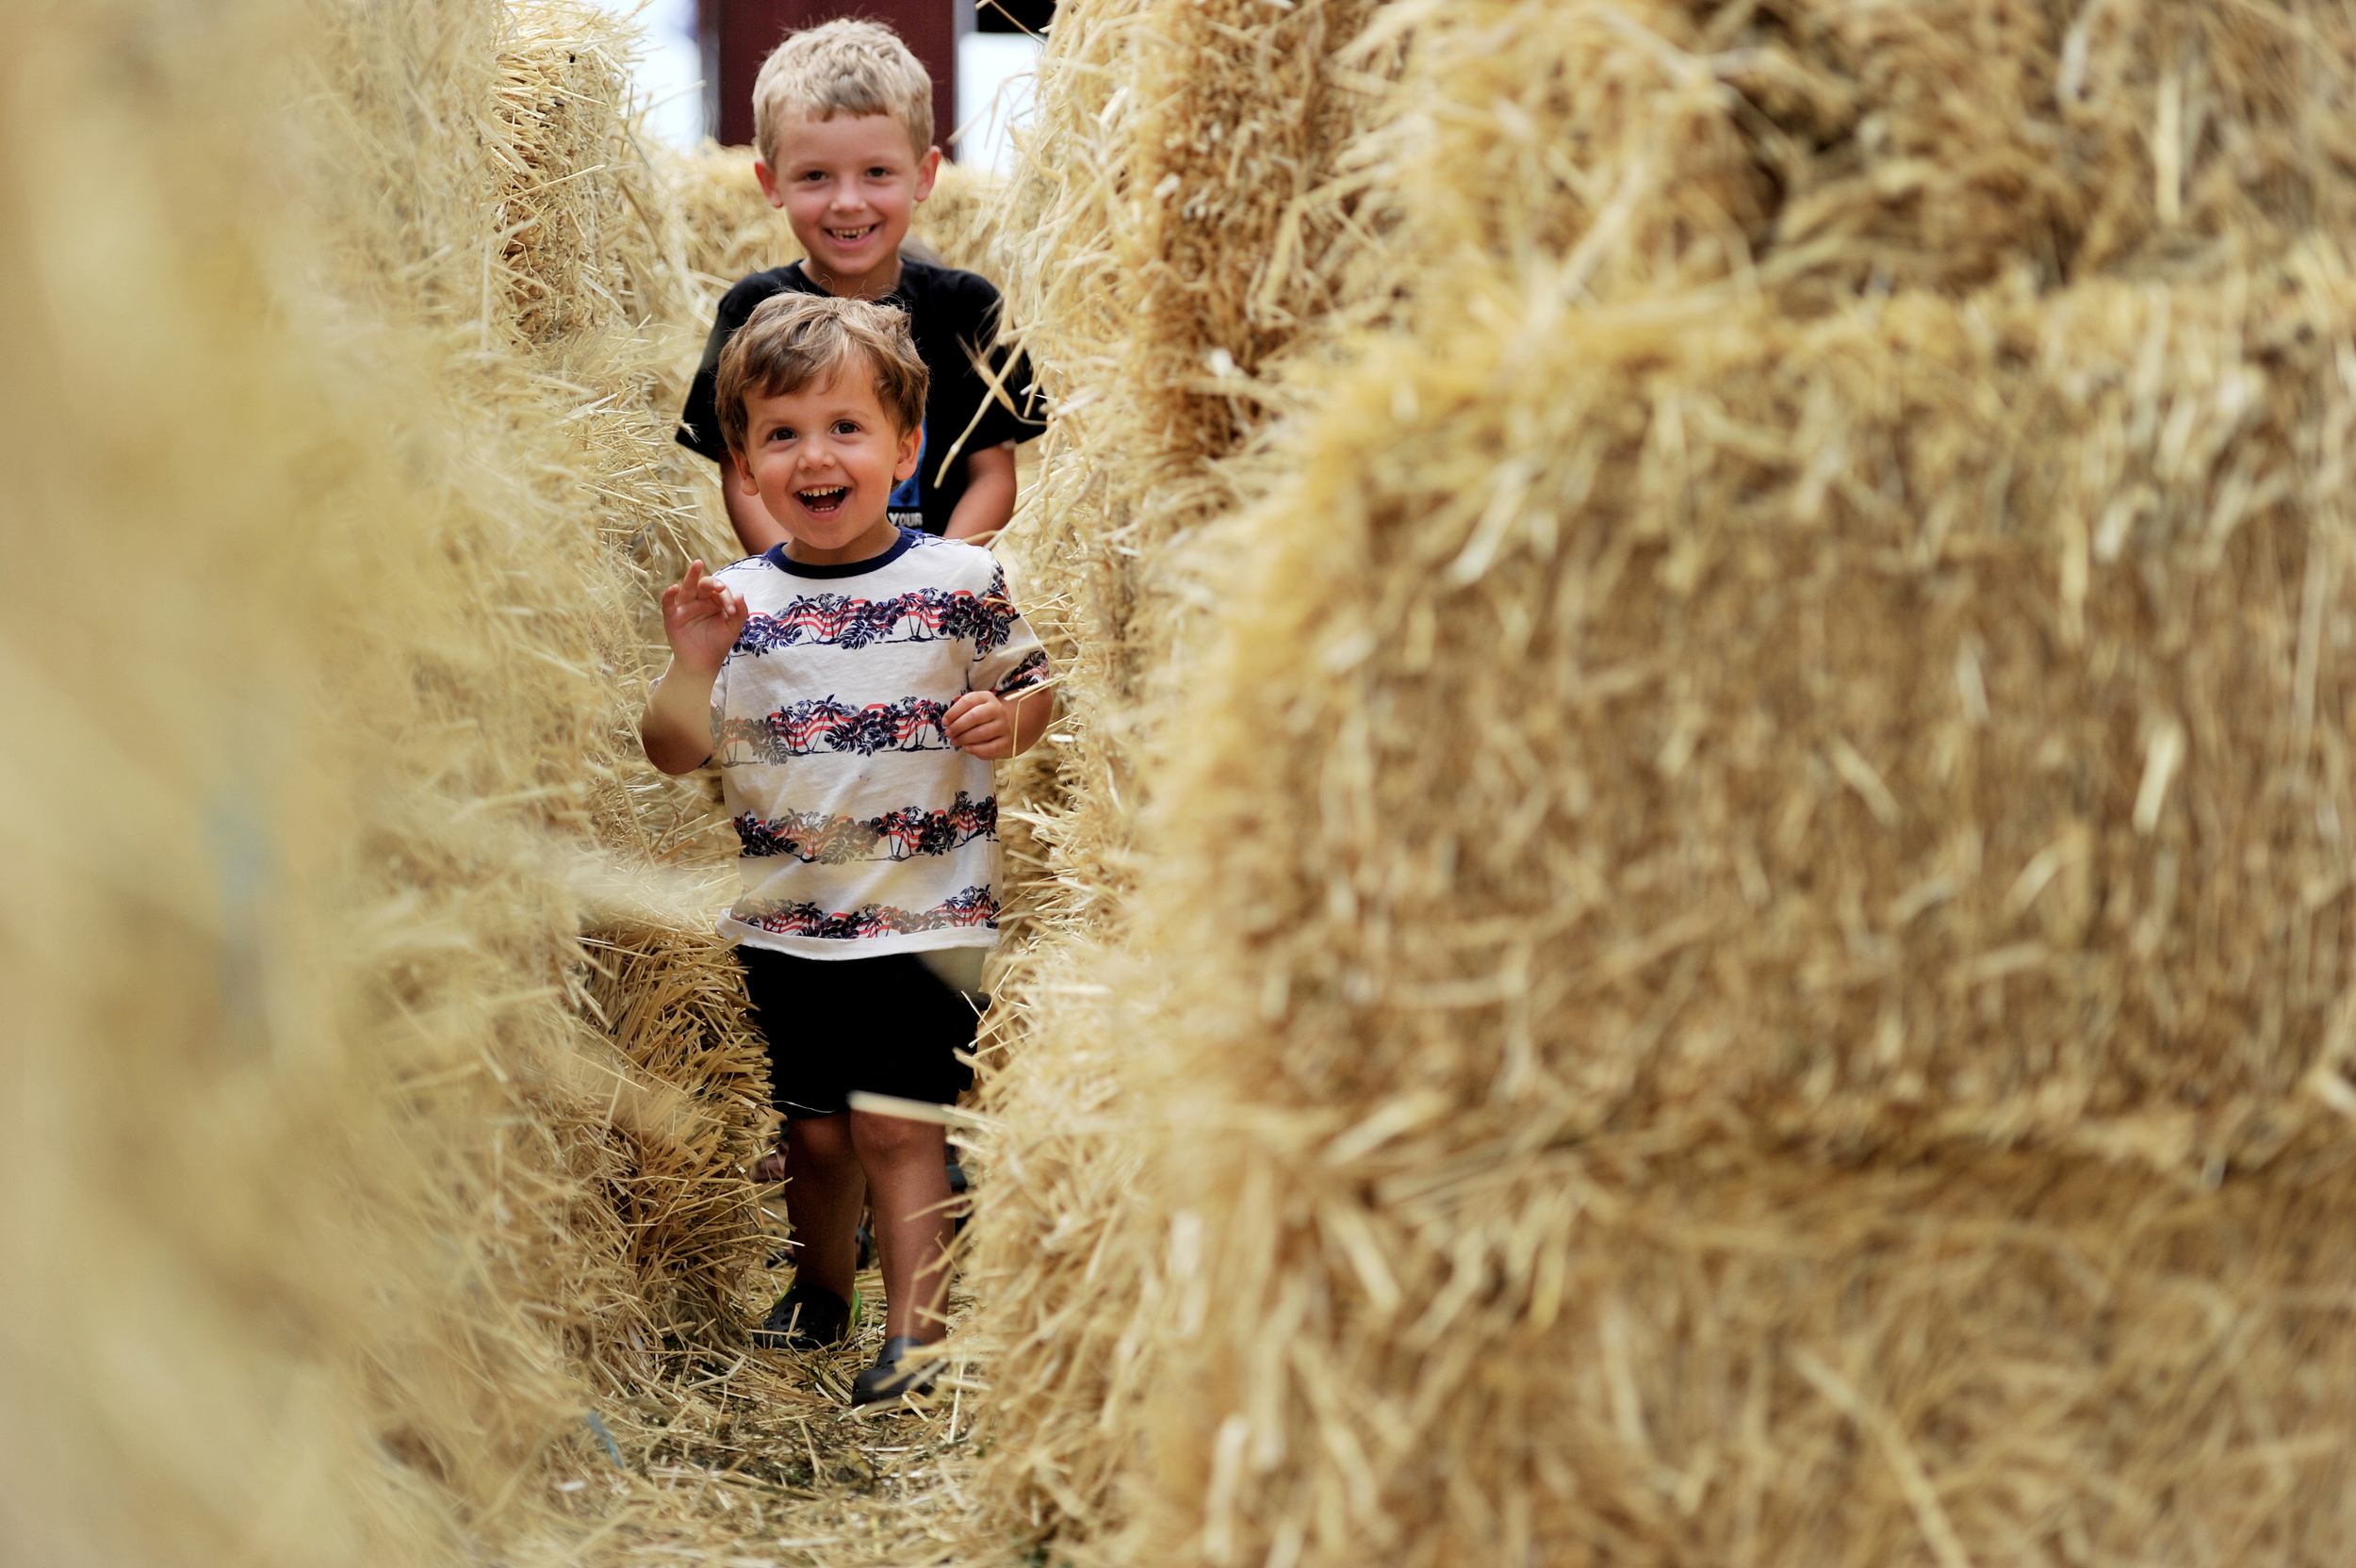 Jesse Rossignol (foreground), 2, of Elizabethtown, runs through the hay-bale maze with his brother Ryan, 6, at the Kutztown Folk Festival in Kutztown, PA, on July 2, 2016. (Reading Eagle: Sarah Stier)